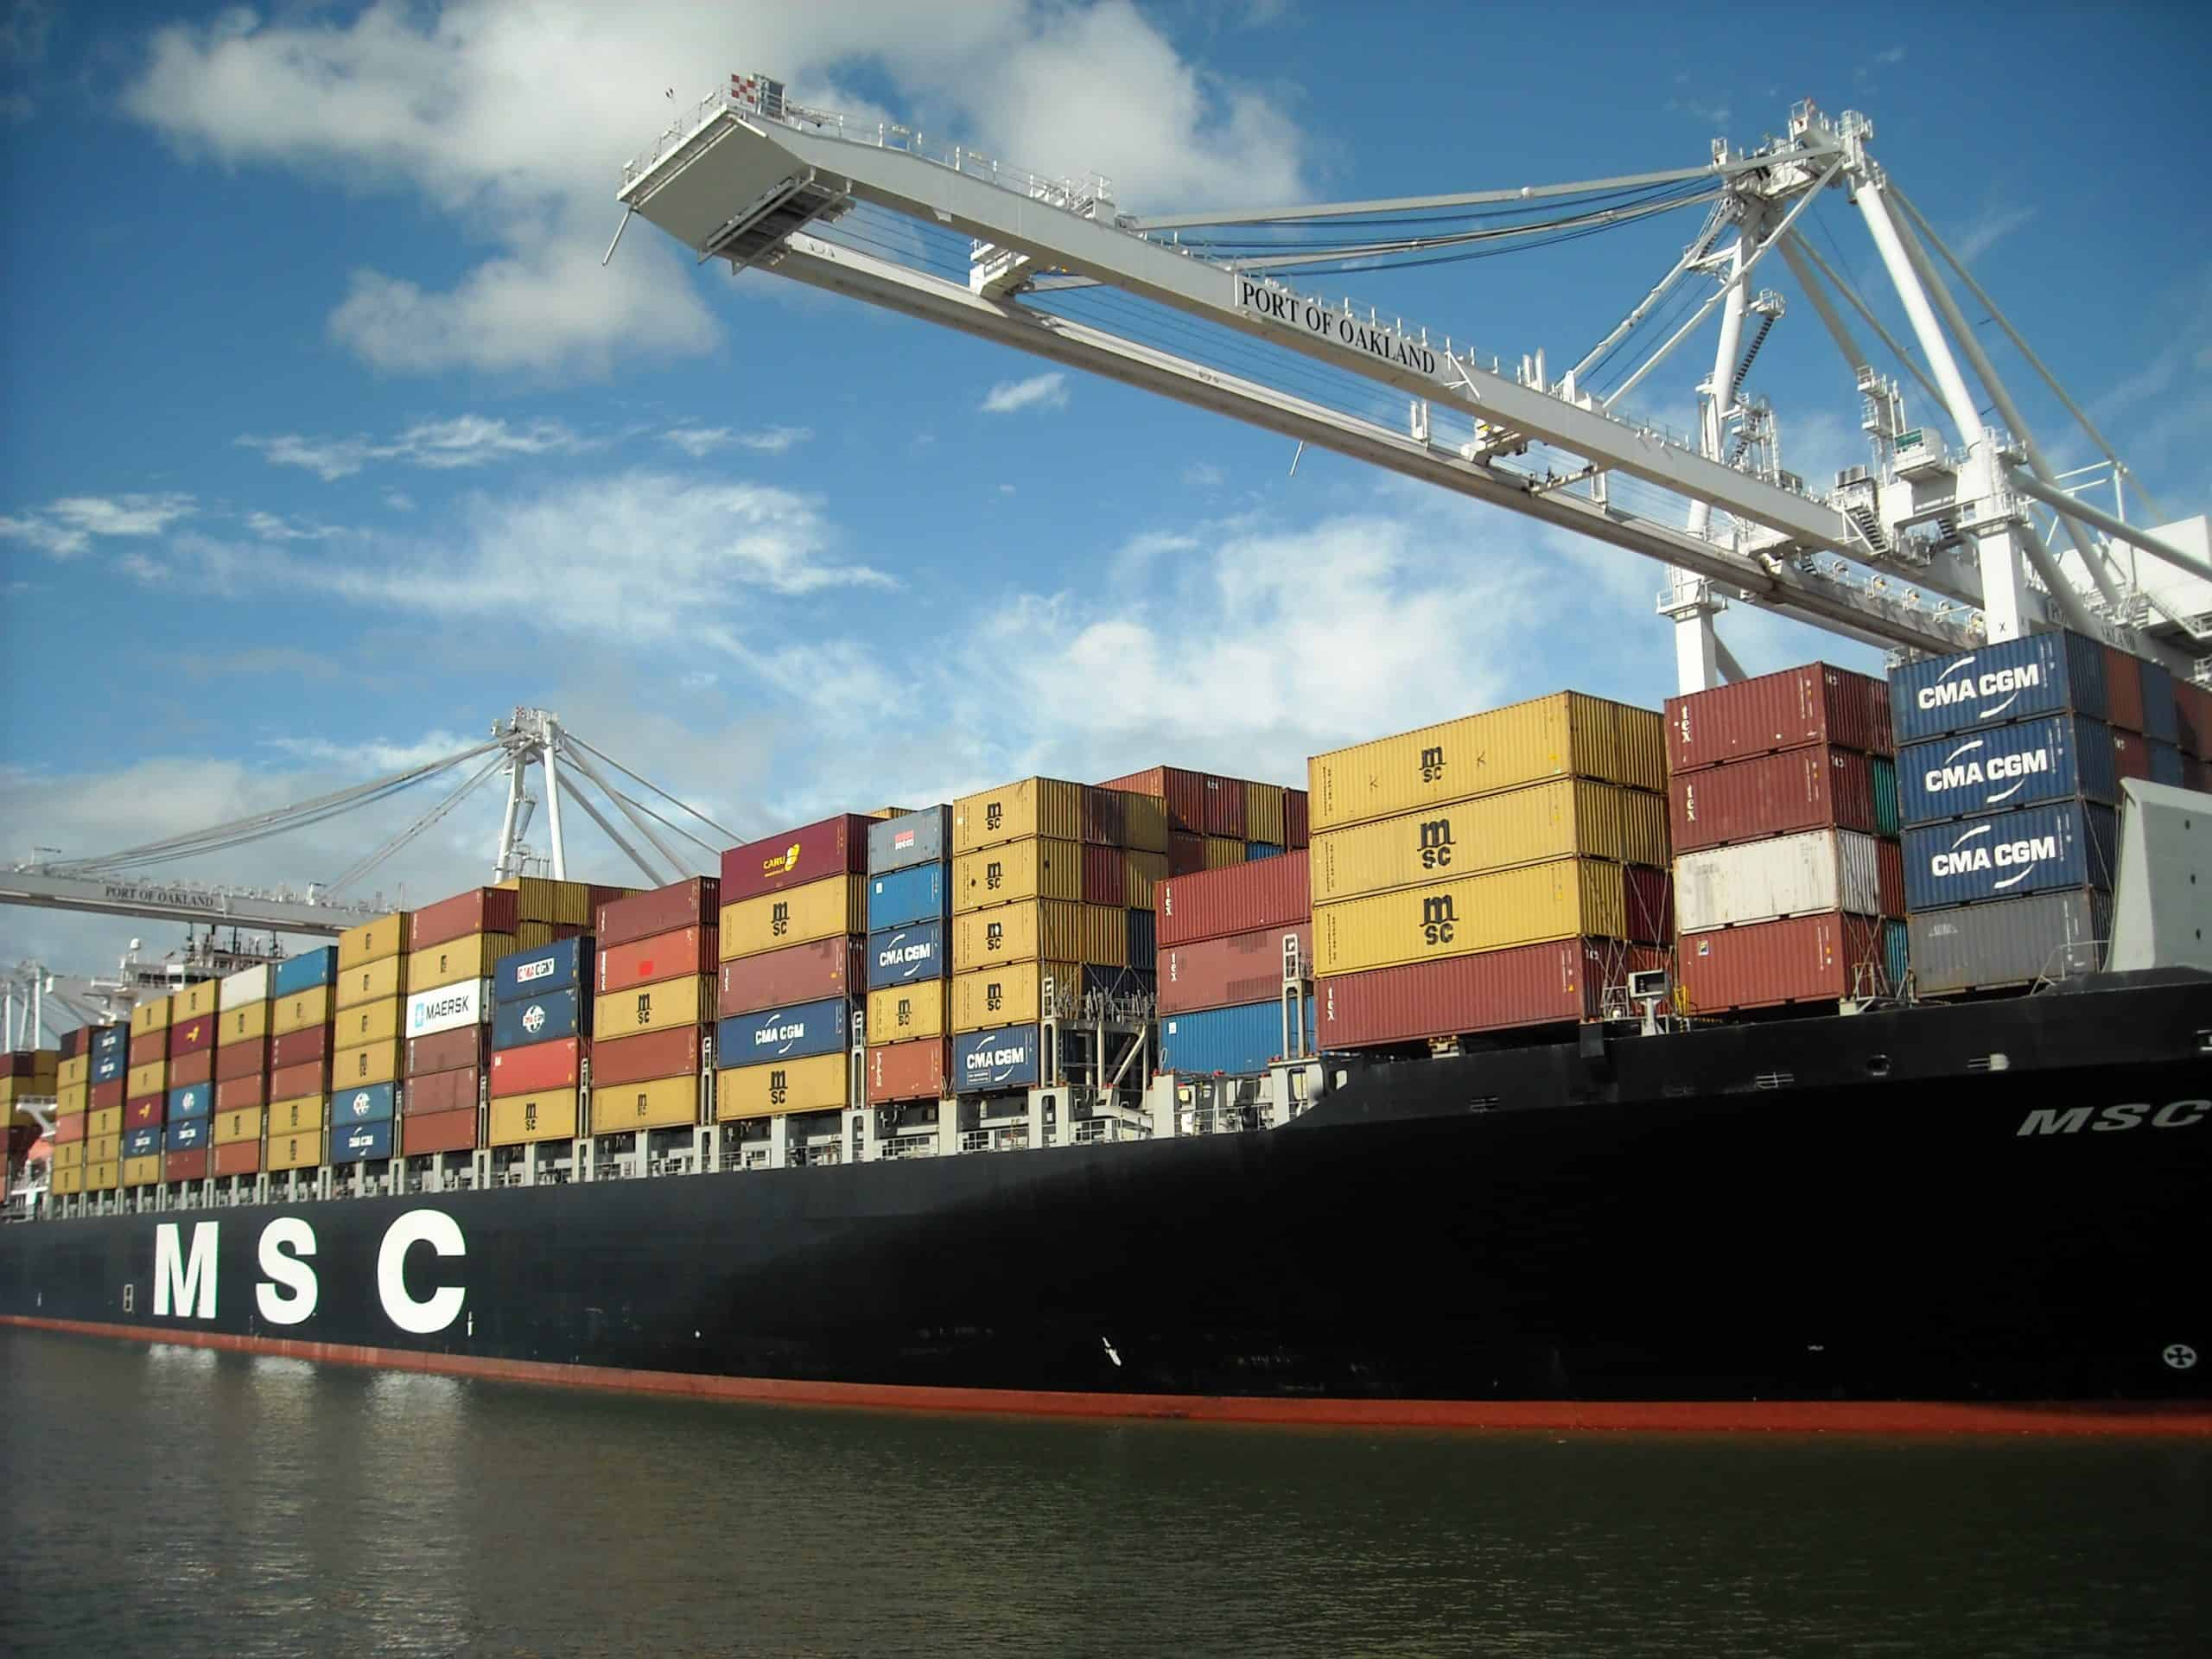 MSC announces 2M service itinerary with Maersk